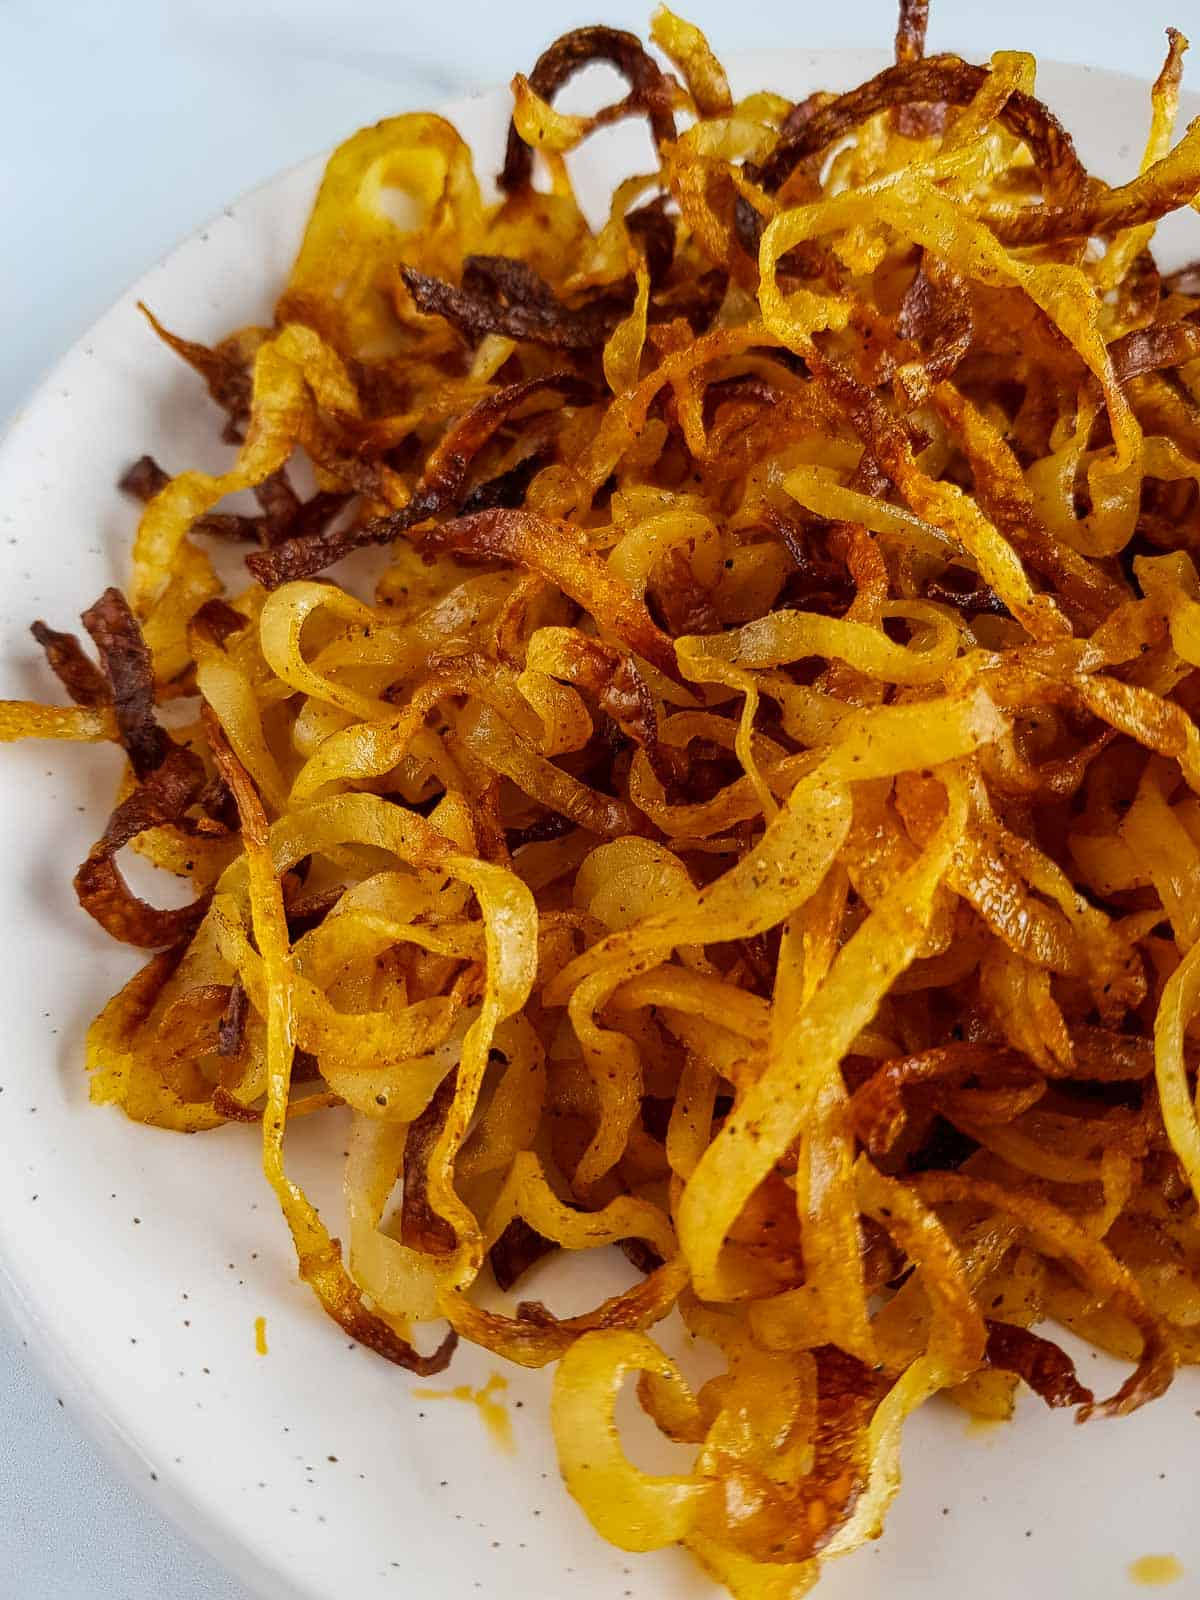 Crispy baked potato strings.